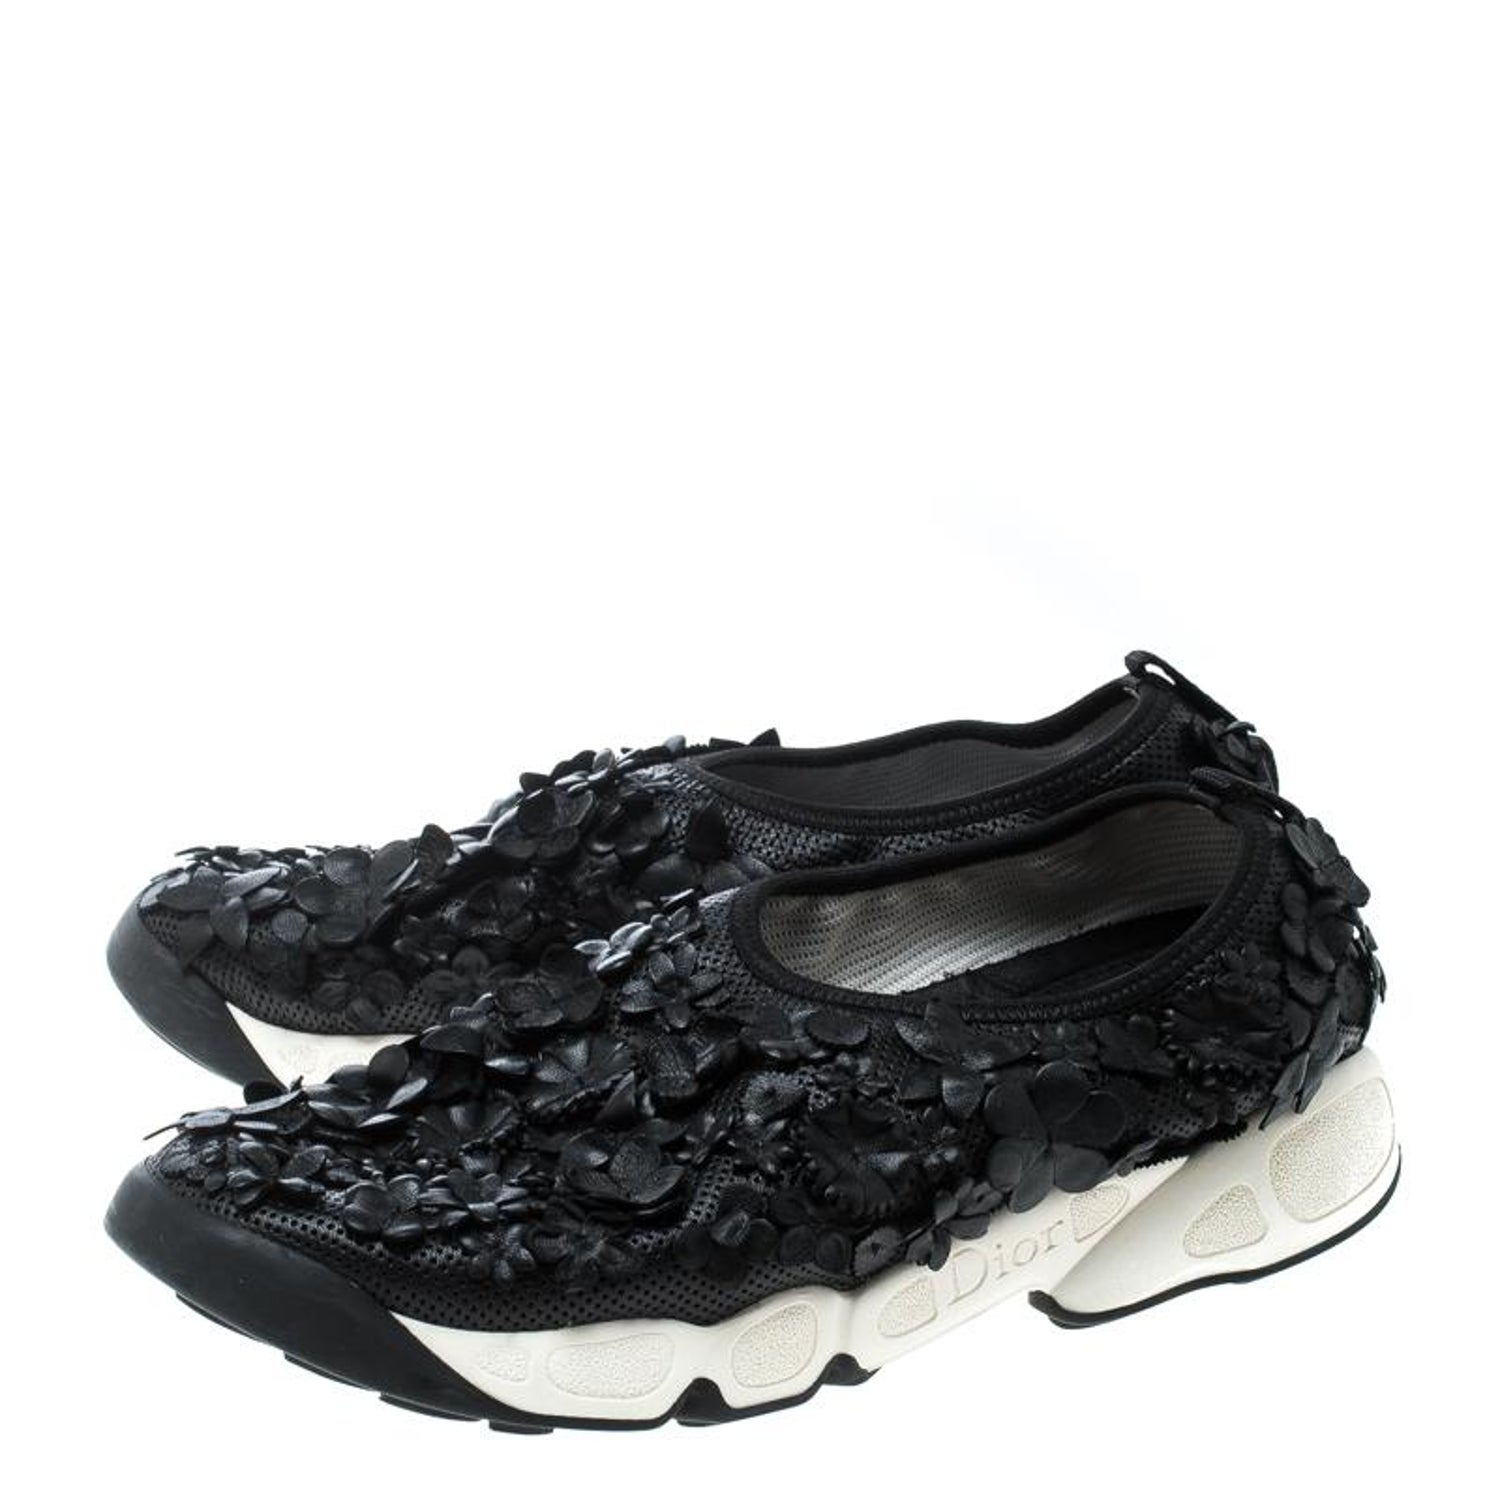 f92f4558 Dior Black Leather Floral Applique Fusion Sneakers Size 38